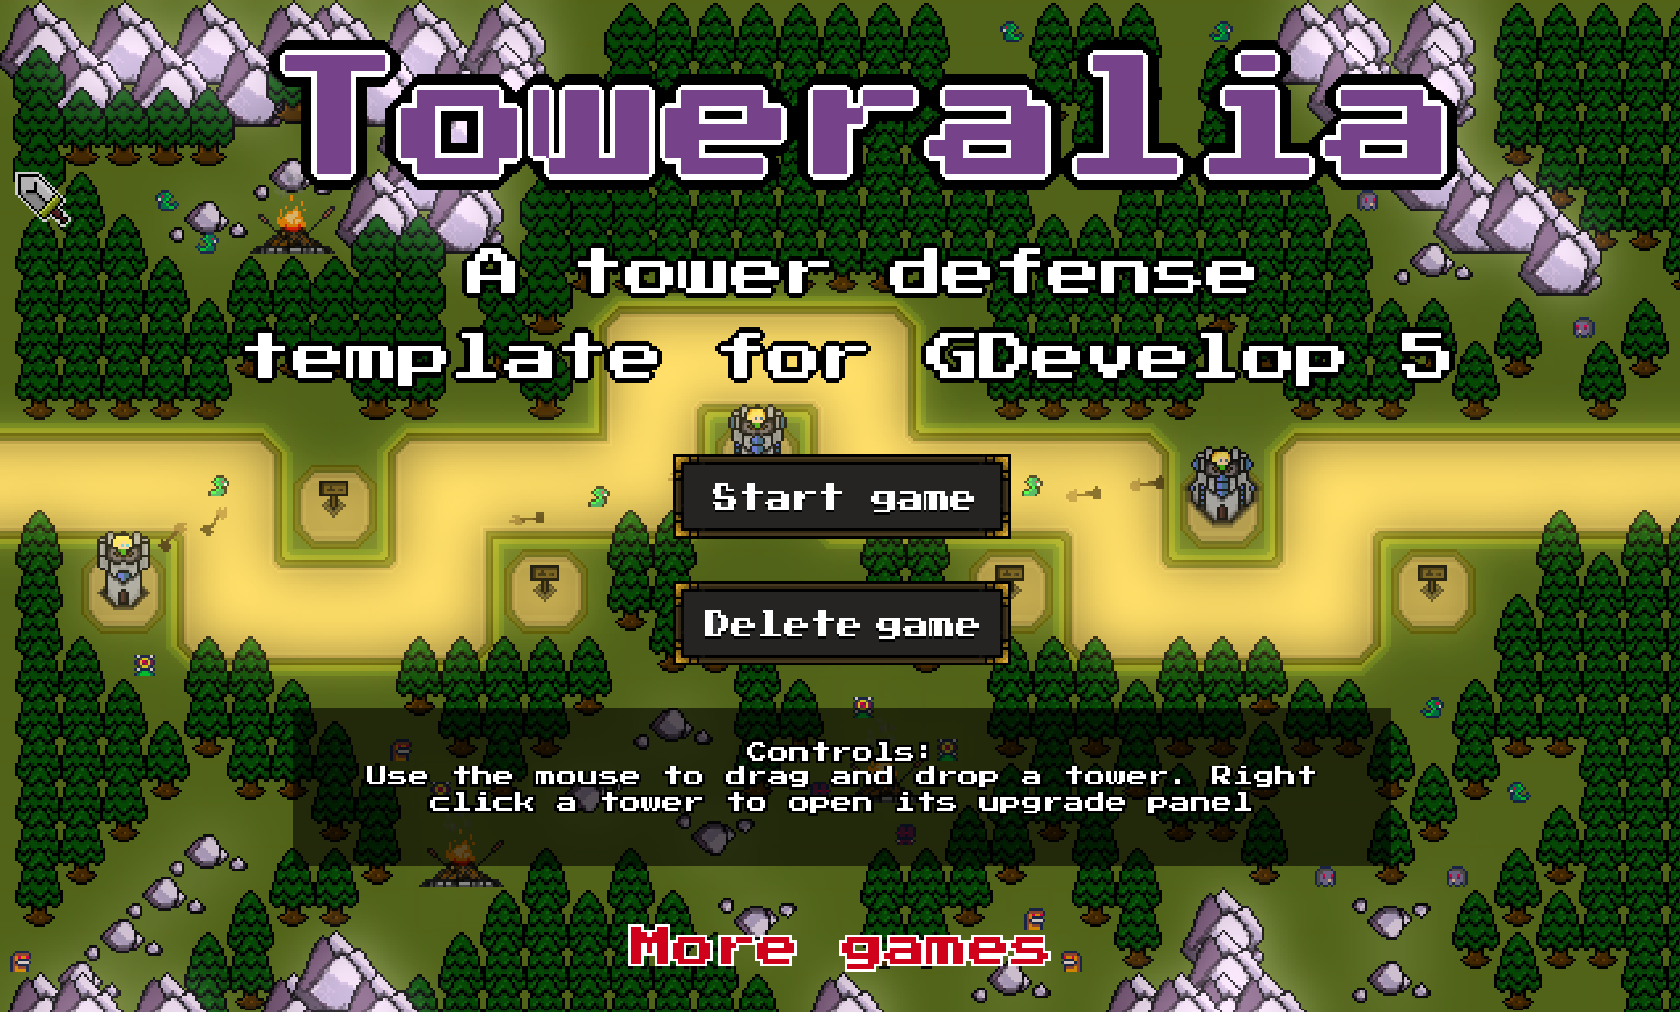 GDevelop - Toweralia - A tower defense template